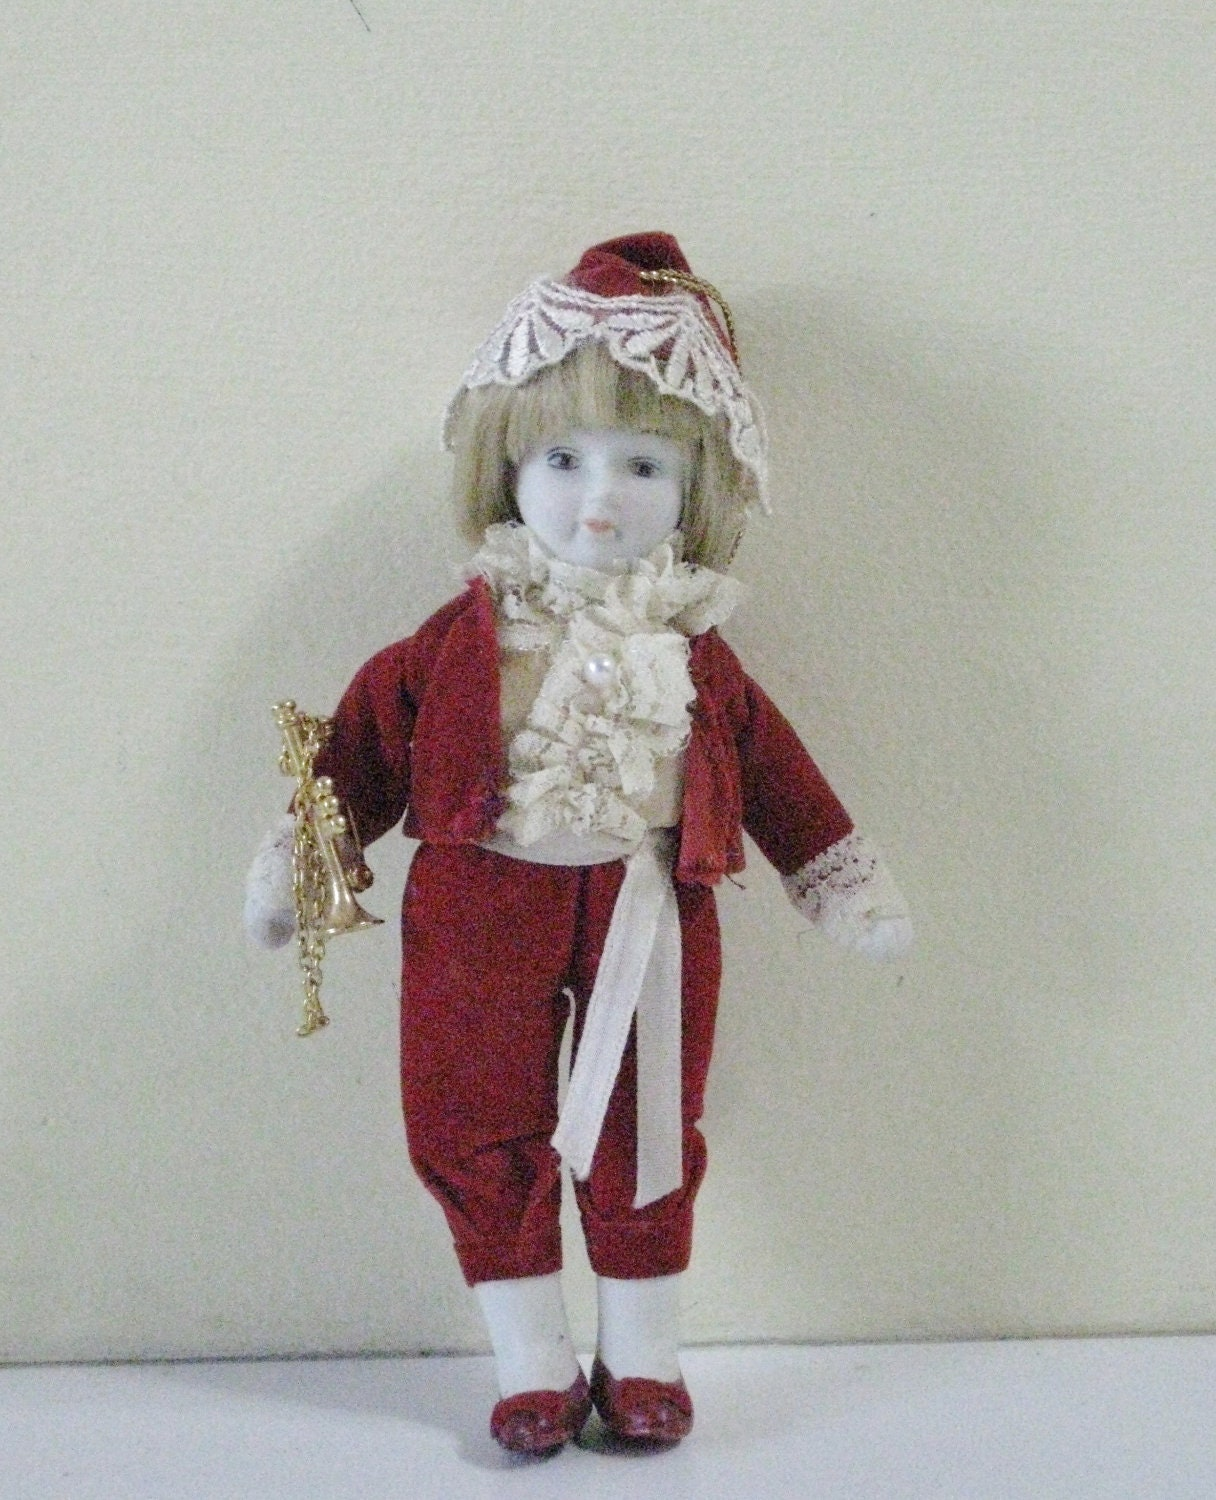 Vintage Christmas Decorations Mouse Carolers Set Jasco: Vintage Christmas Victorian Doll Ornament Red By